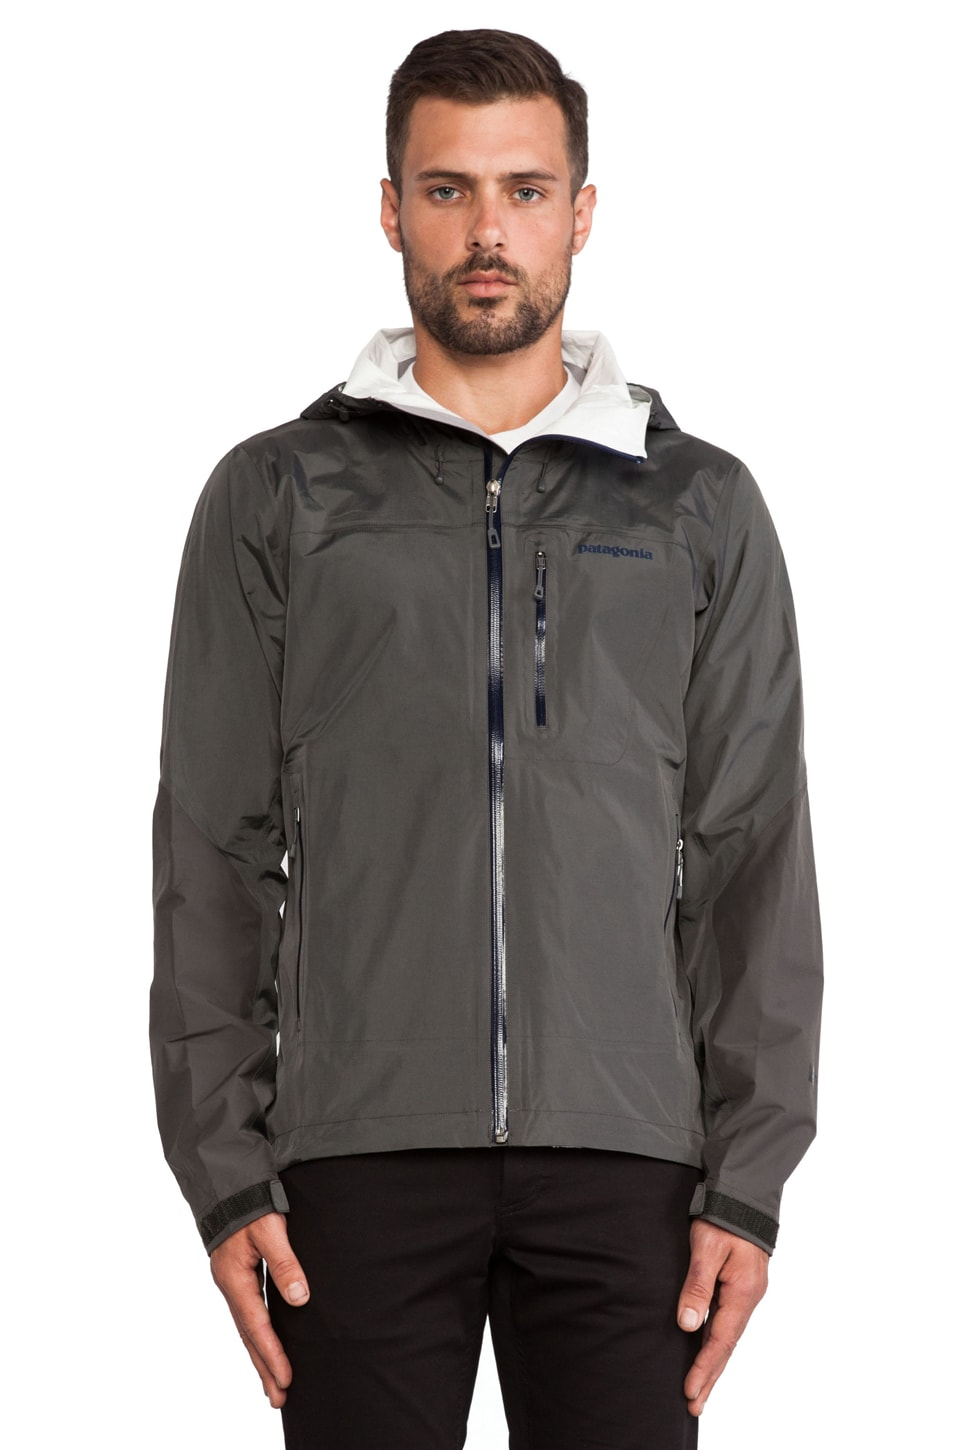 Patagonia Torrentshell Stretch Jacket in Forge Grey & Classic Navy